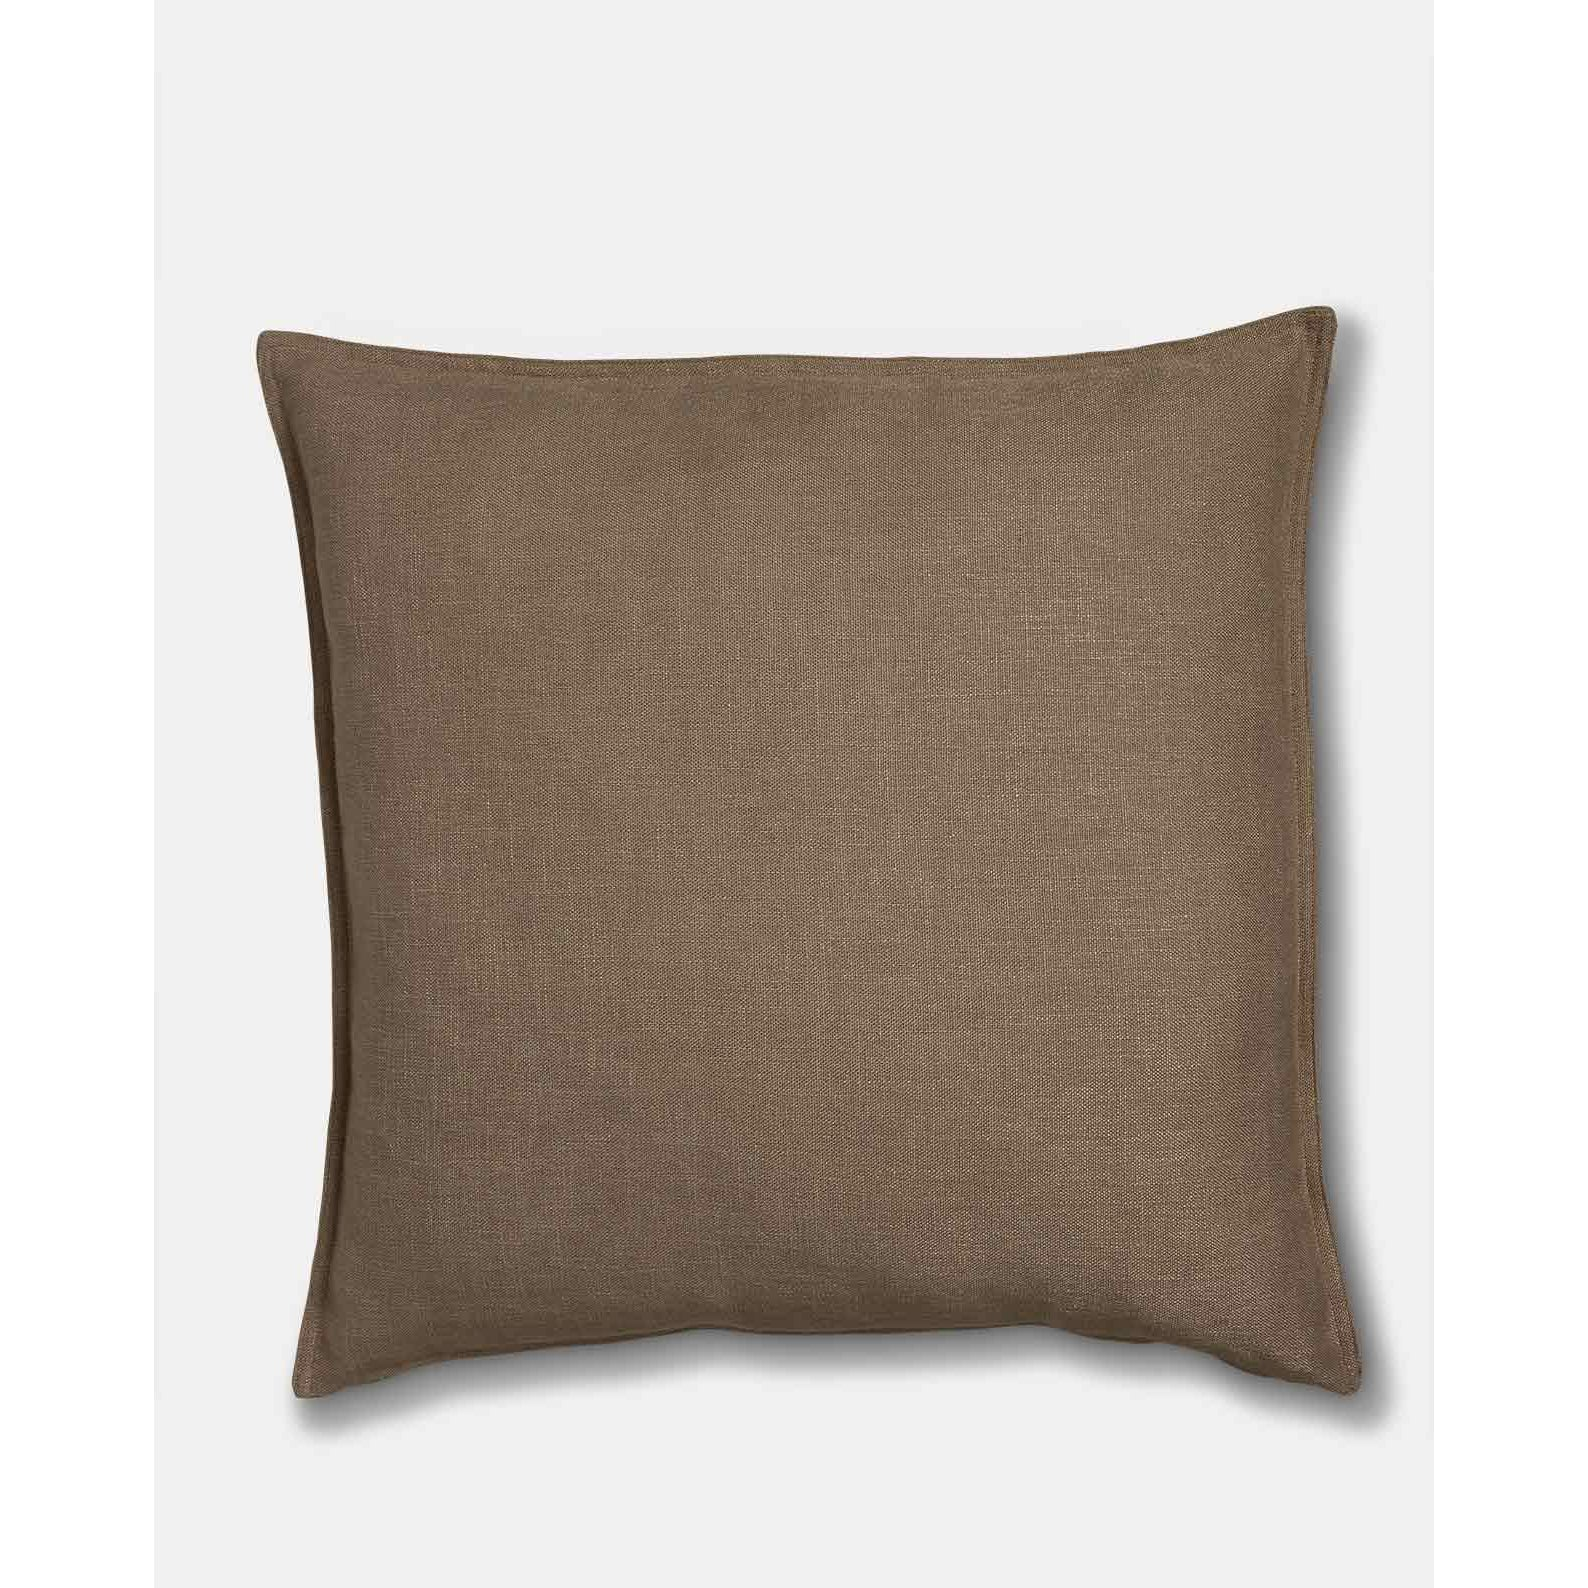 Oatmeal Linen Cushion